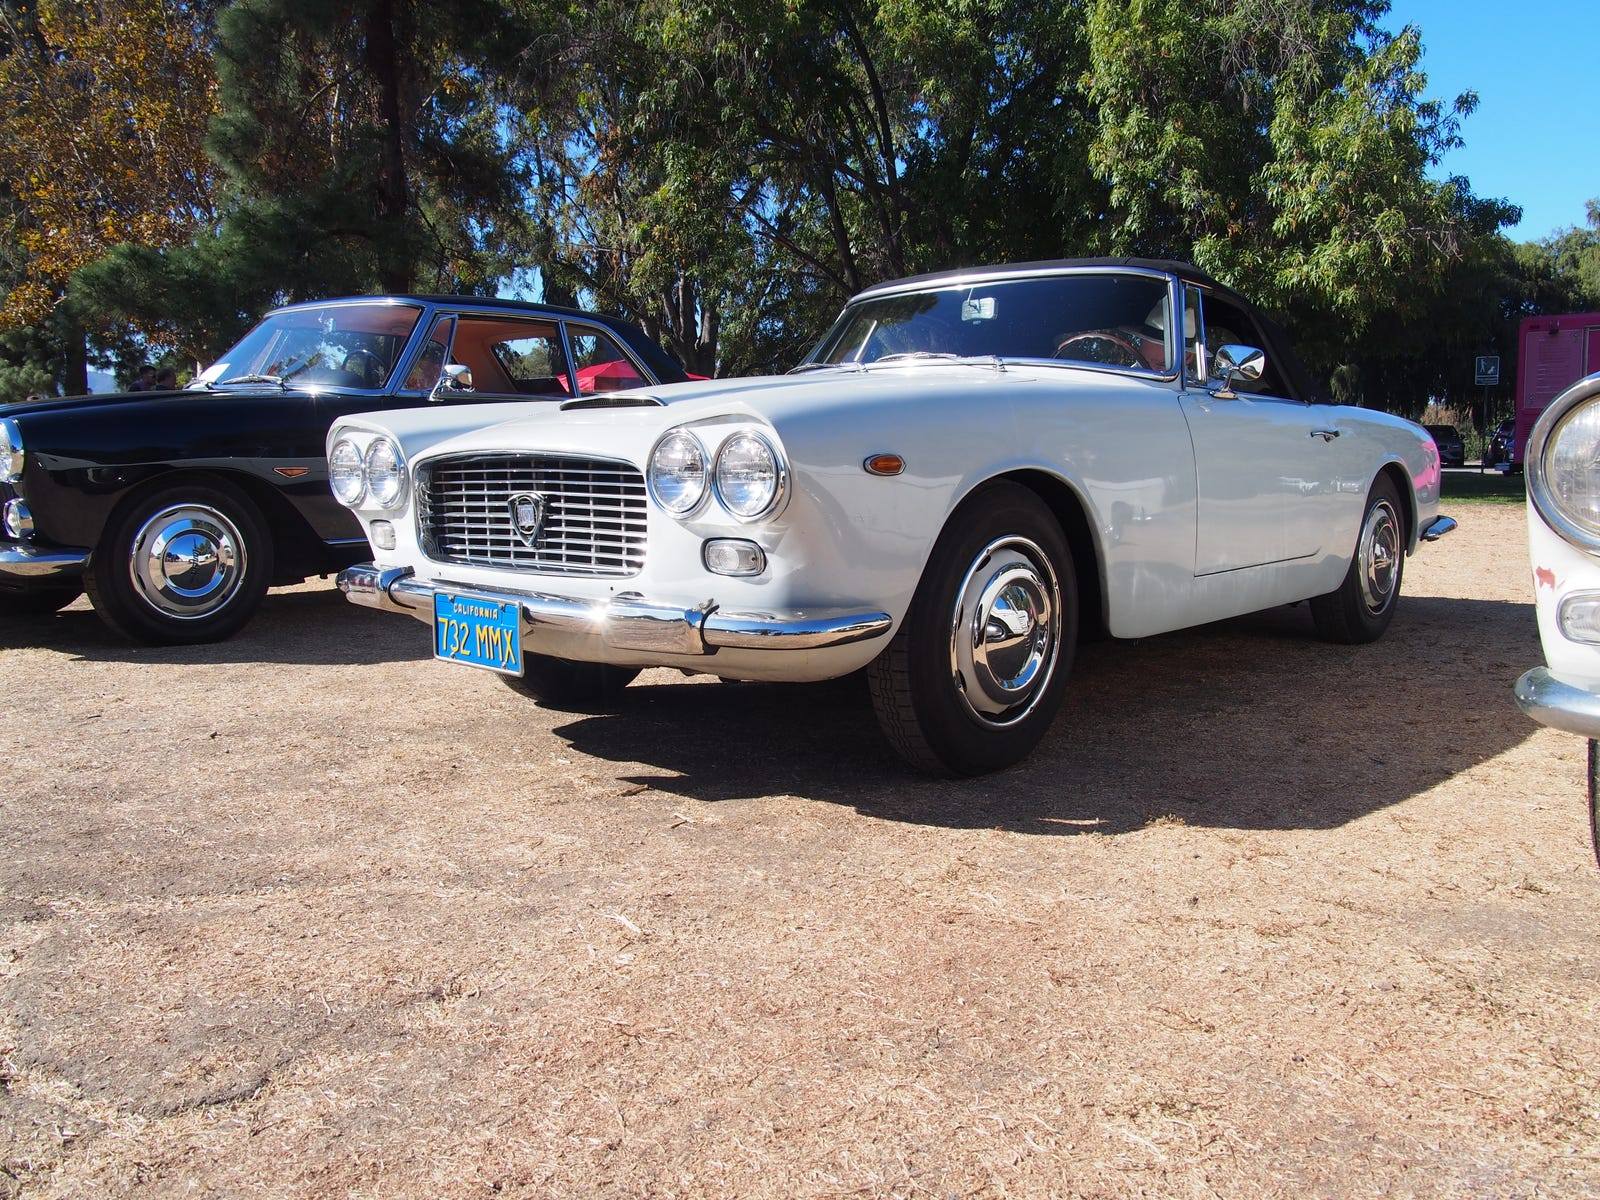 The Lancia Flaminia GT Convertible and its amazing taillights.